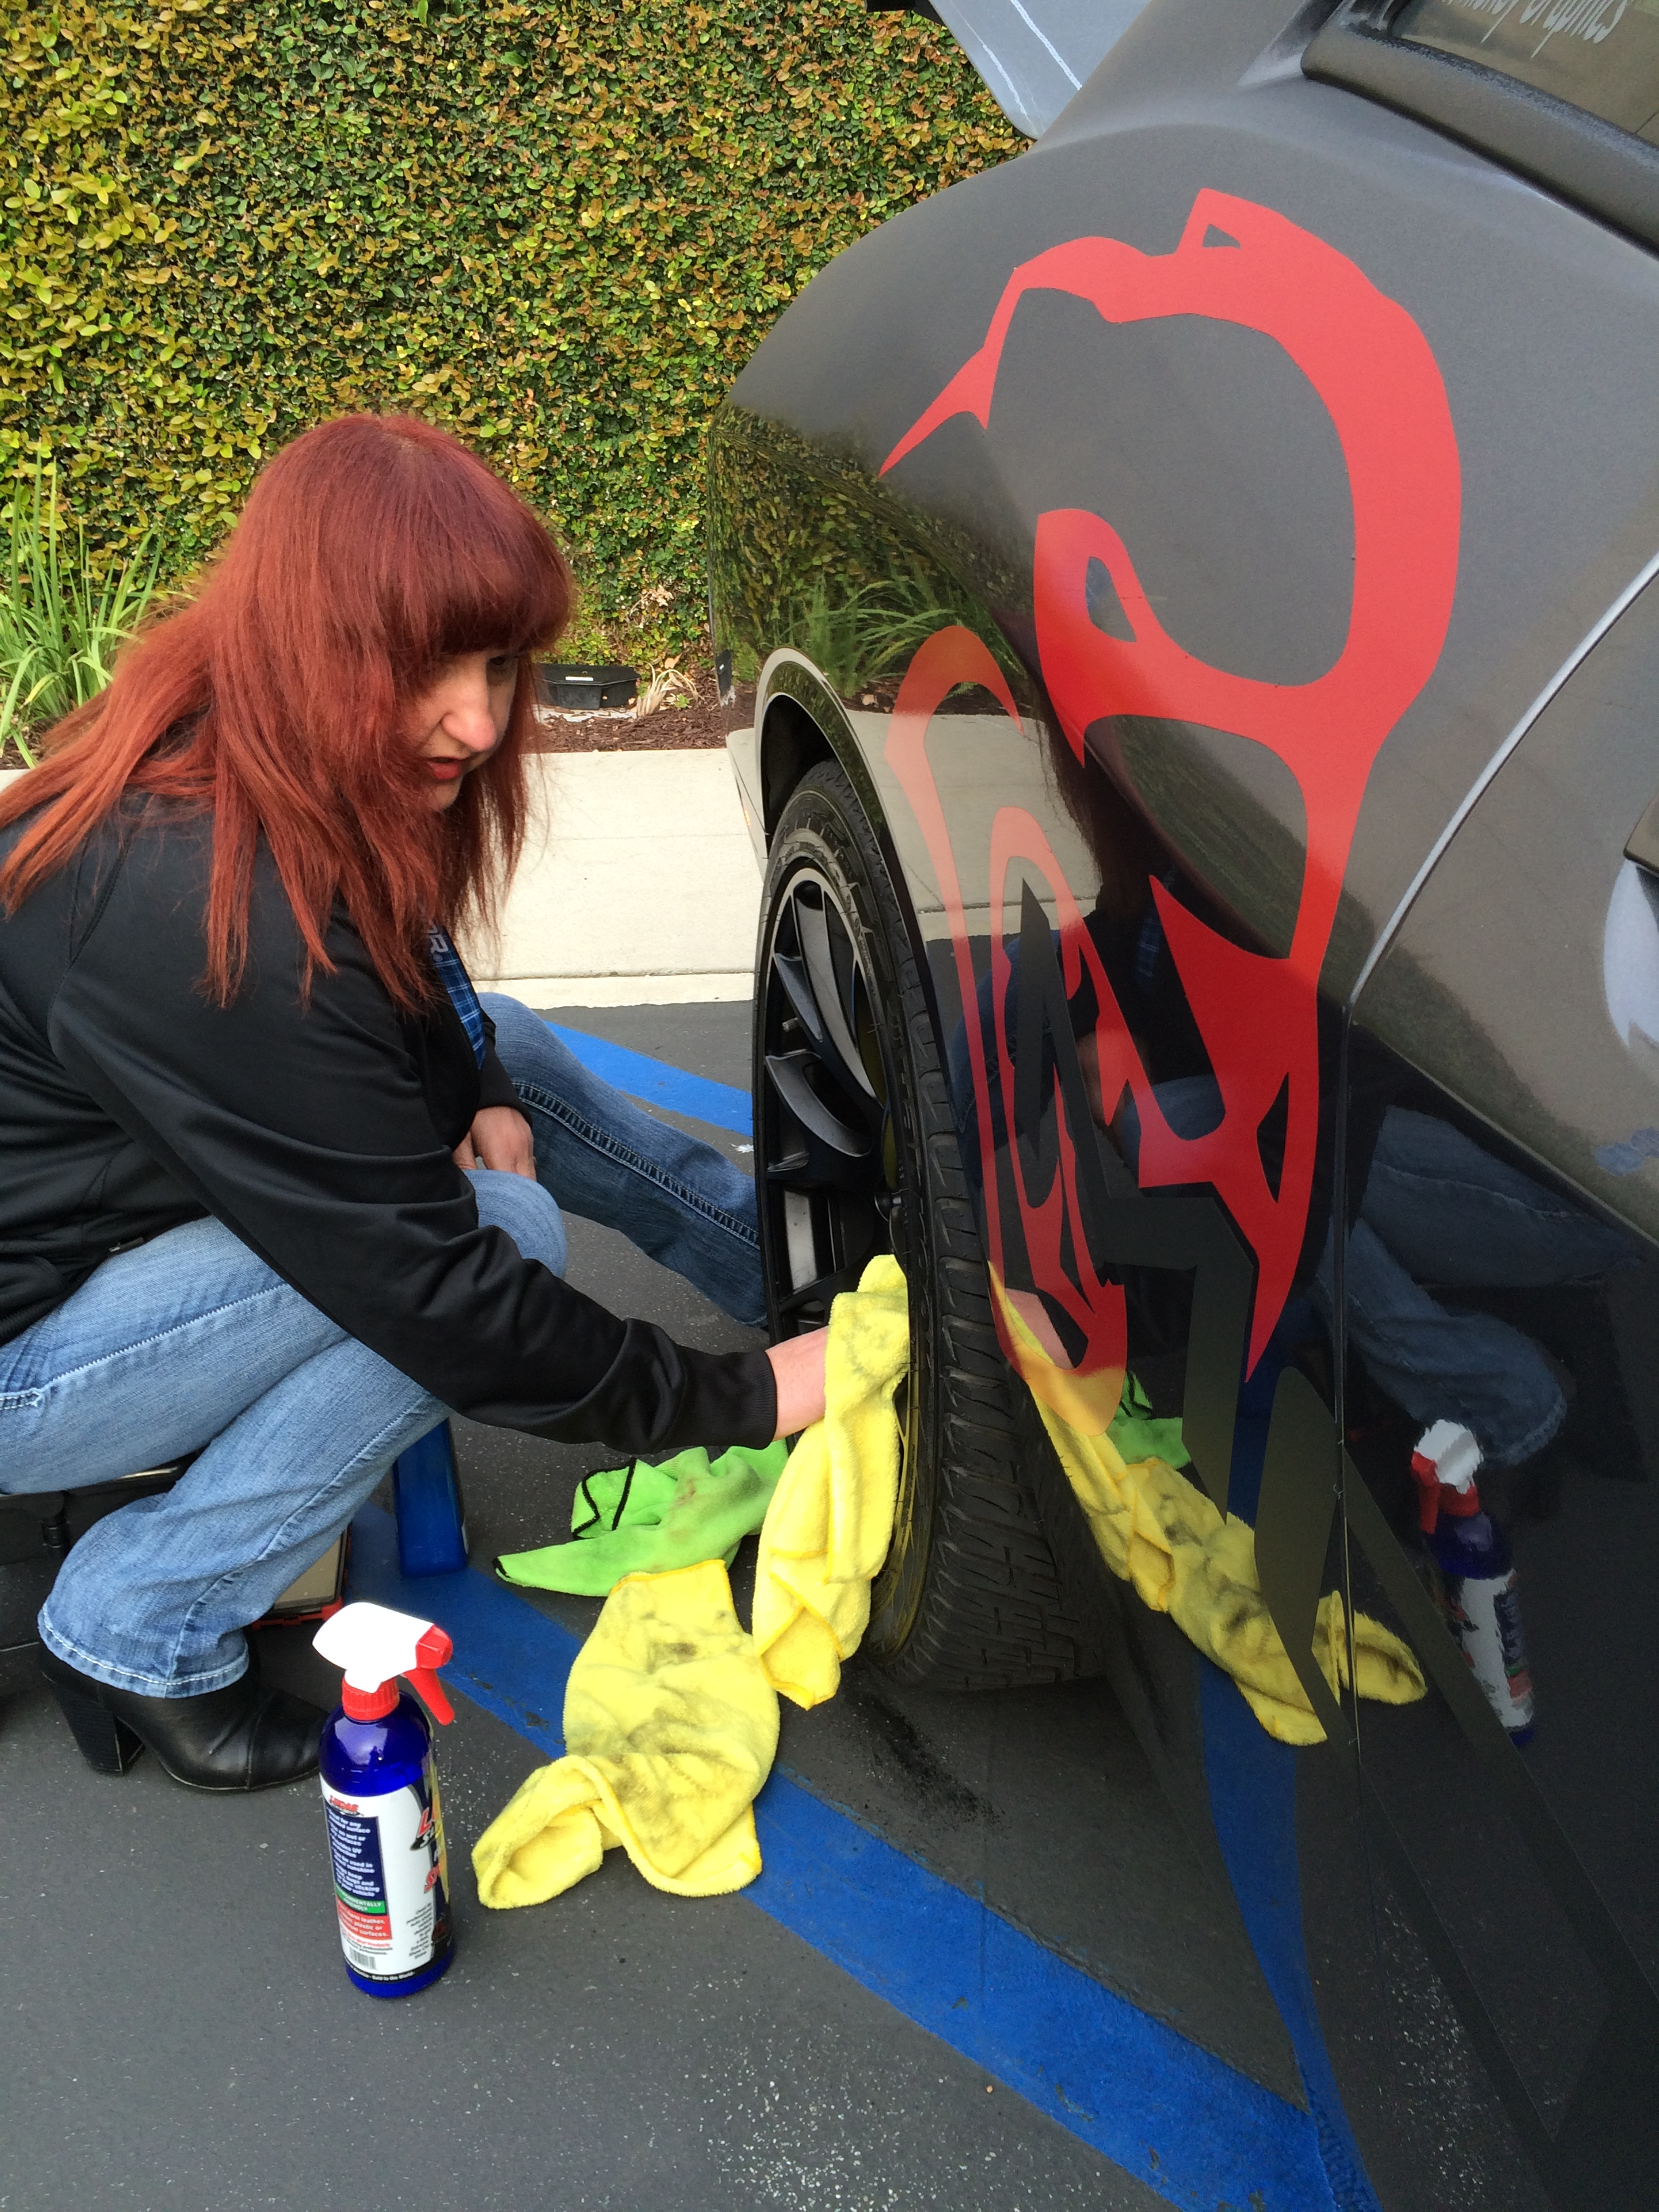 Mopar Shakers of the Plains member Rei Pittman is up & cleaning up her Dodge Challenger SRT Hellcat.